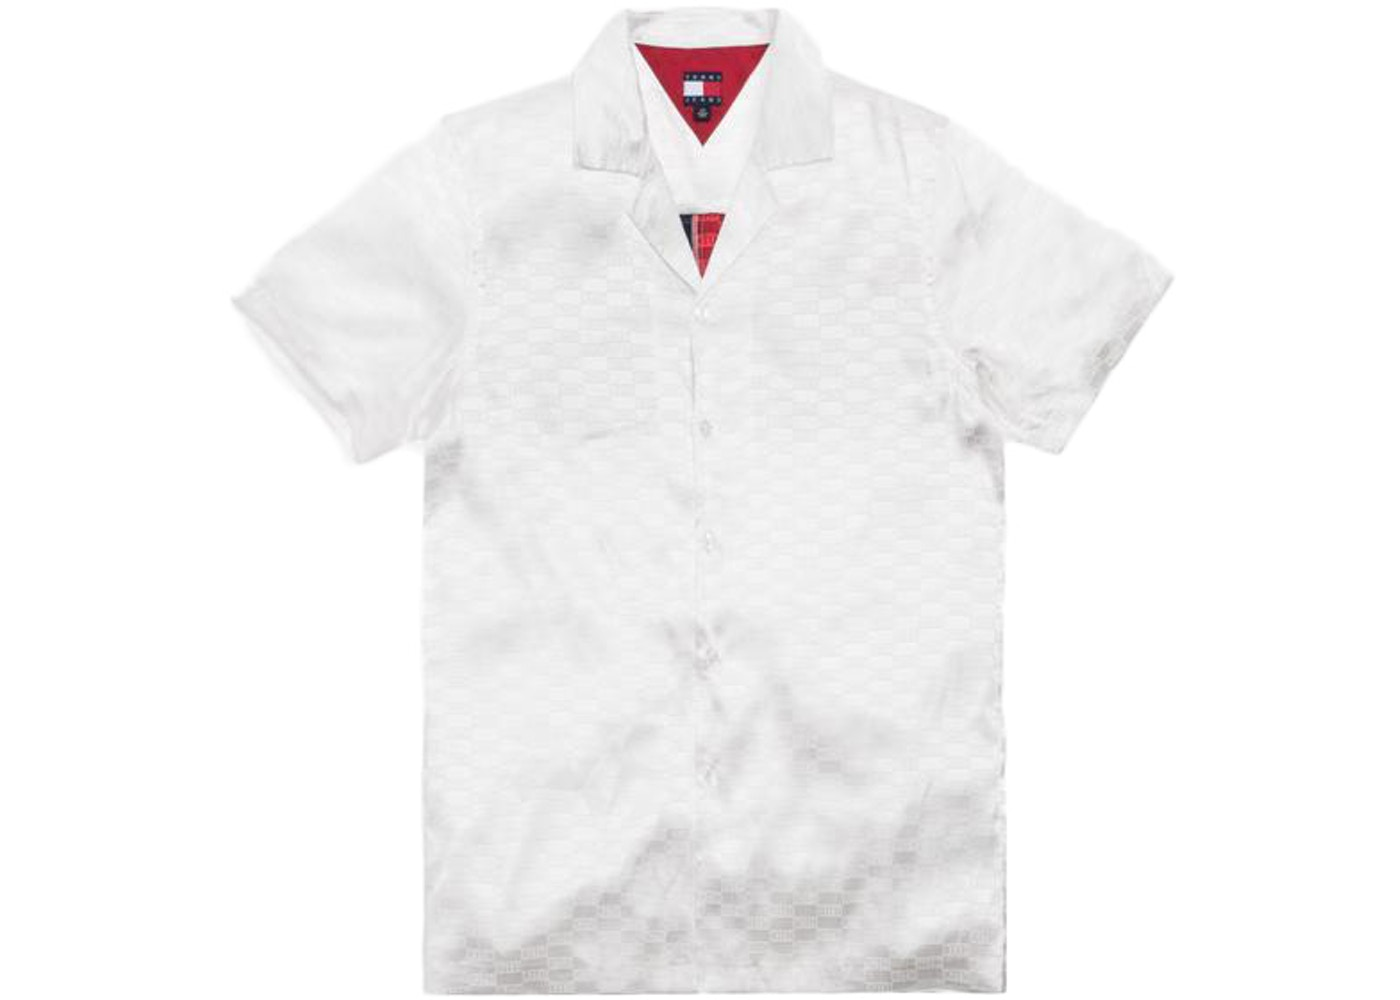 968ea4ed Kith x Tommy Hilfiger Satin Camp Shirt White - SS19